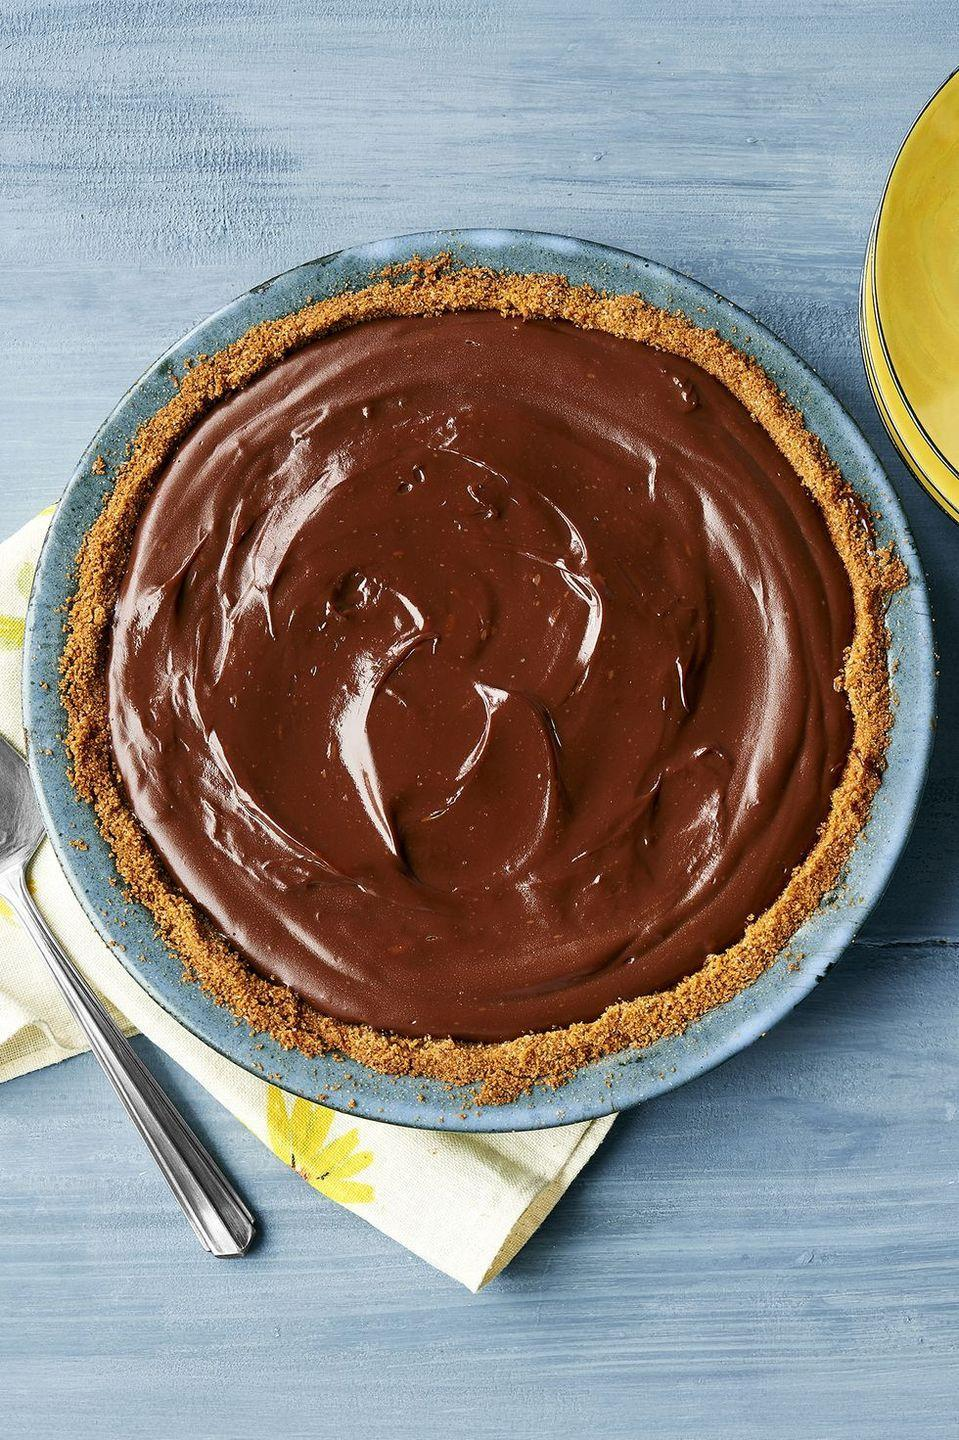 """<p>A classic chocolate pie will be a guaranteed crowd pleaser at your party. Plus, this one is Ladd Drummond-approved!</p><p><a href=""""https://www.thepioneerwoman.com/food-cooking/recipes/a11850/chocolate-pie/"""" rel=""""nofollow noopener"""" target=""""_blank"""" data-ylk=""""slk:Get the recipe."""" class=""""link rapid-noclick-resp""""><strong>Get the recipe.</strong></a></p><p><a class=""""link rapid-noclick-resp"""" href=""""https://go.redirectingat.com?id=74968X1596630&url=https%3A%2F%2Fwww.walmart.com%2Fsearch%2F%3Fquery%3Dpie%2Bplate&sref=https%3A%2F%2Fwww.thepioneerwoman.com%2Ffood-cooking%2Fmeals-menus%2Fg32109085%2Ffourth-of-july-desserts%2F"""" rel=""""nofollow noopener"""" target=""""_blank"""" data-ylk=""""slk:SHOP PIE PLATES"""">SHOP PIE PLATES</a></p>"""